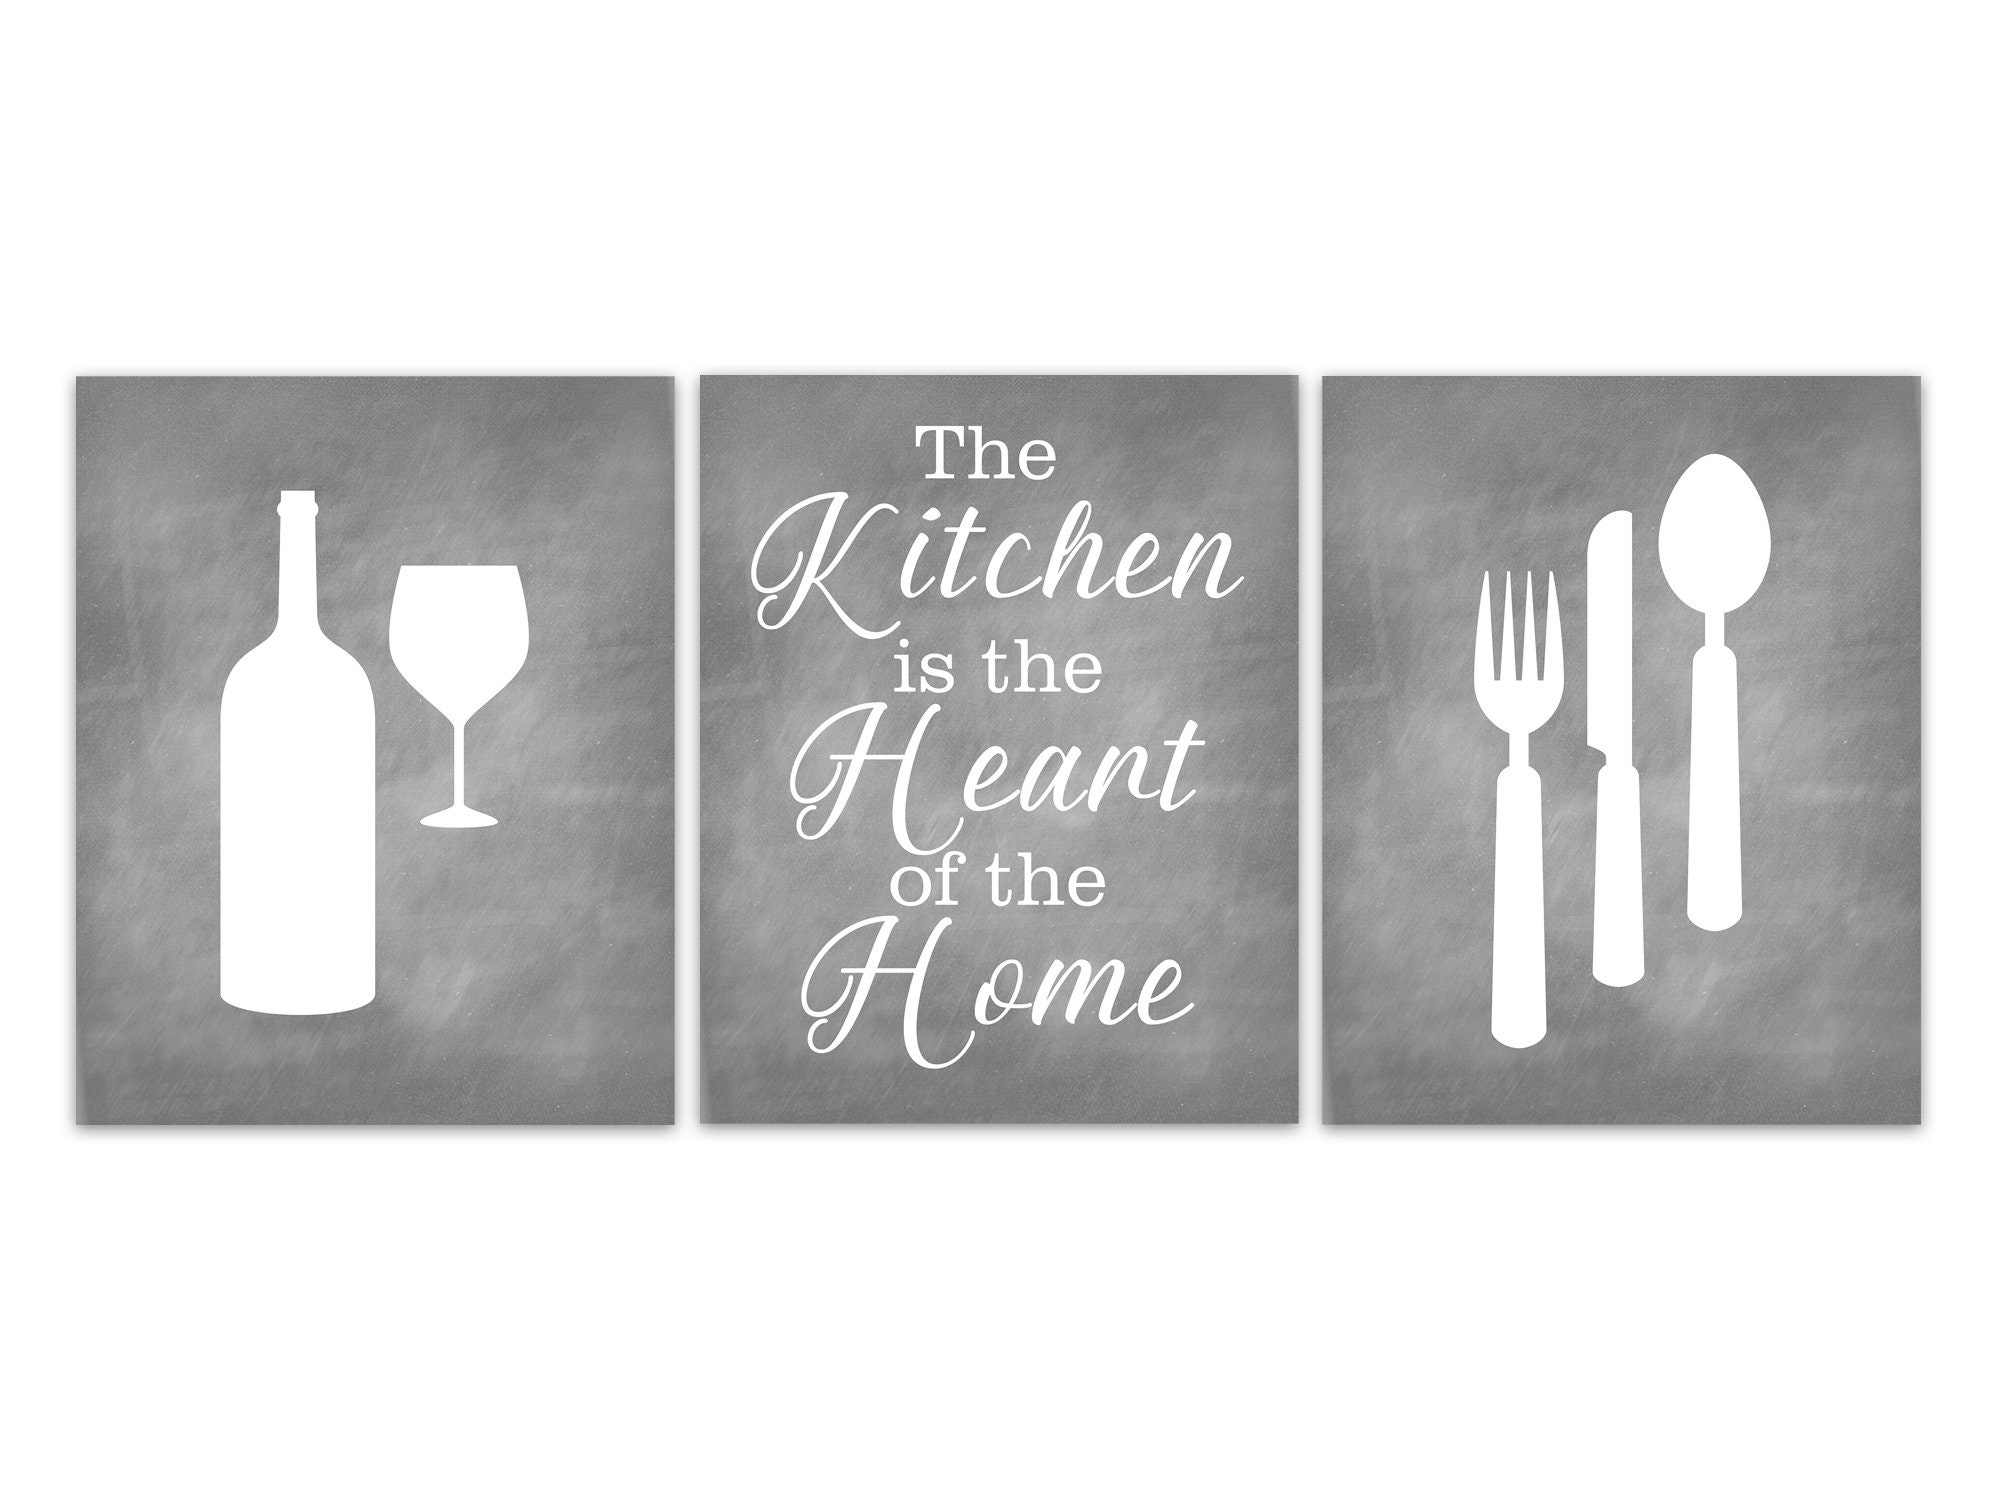 Gray Kitchen Canvas Utensils Wall Art Prints Kitchen Decor Modern Kitchen Pictures The Kitchen Is The Heart Of The Home Home320